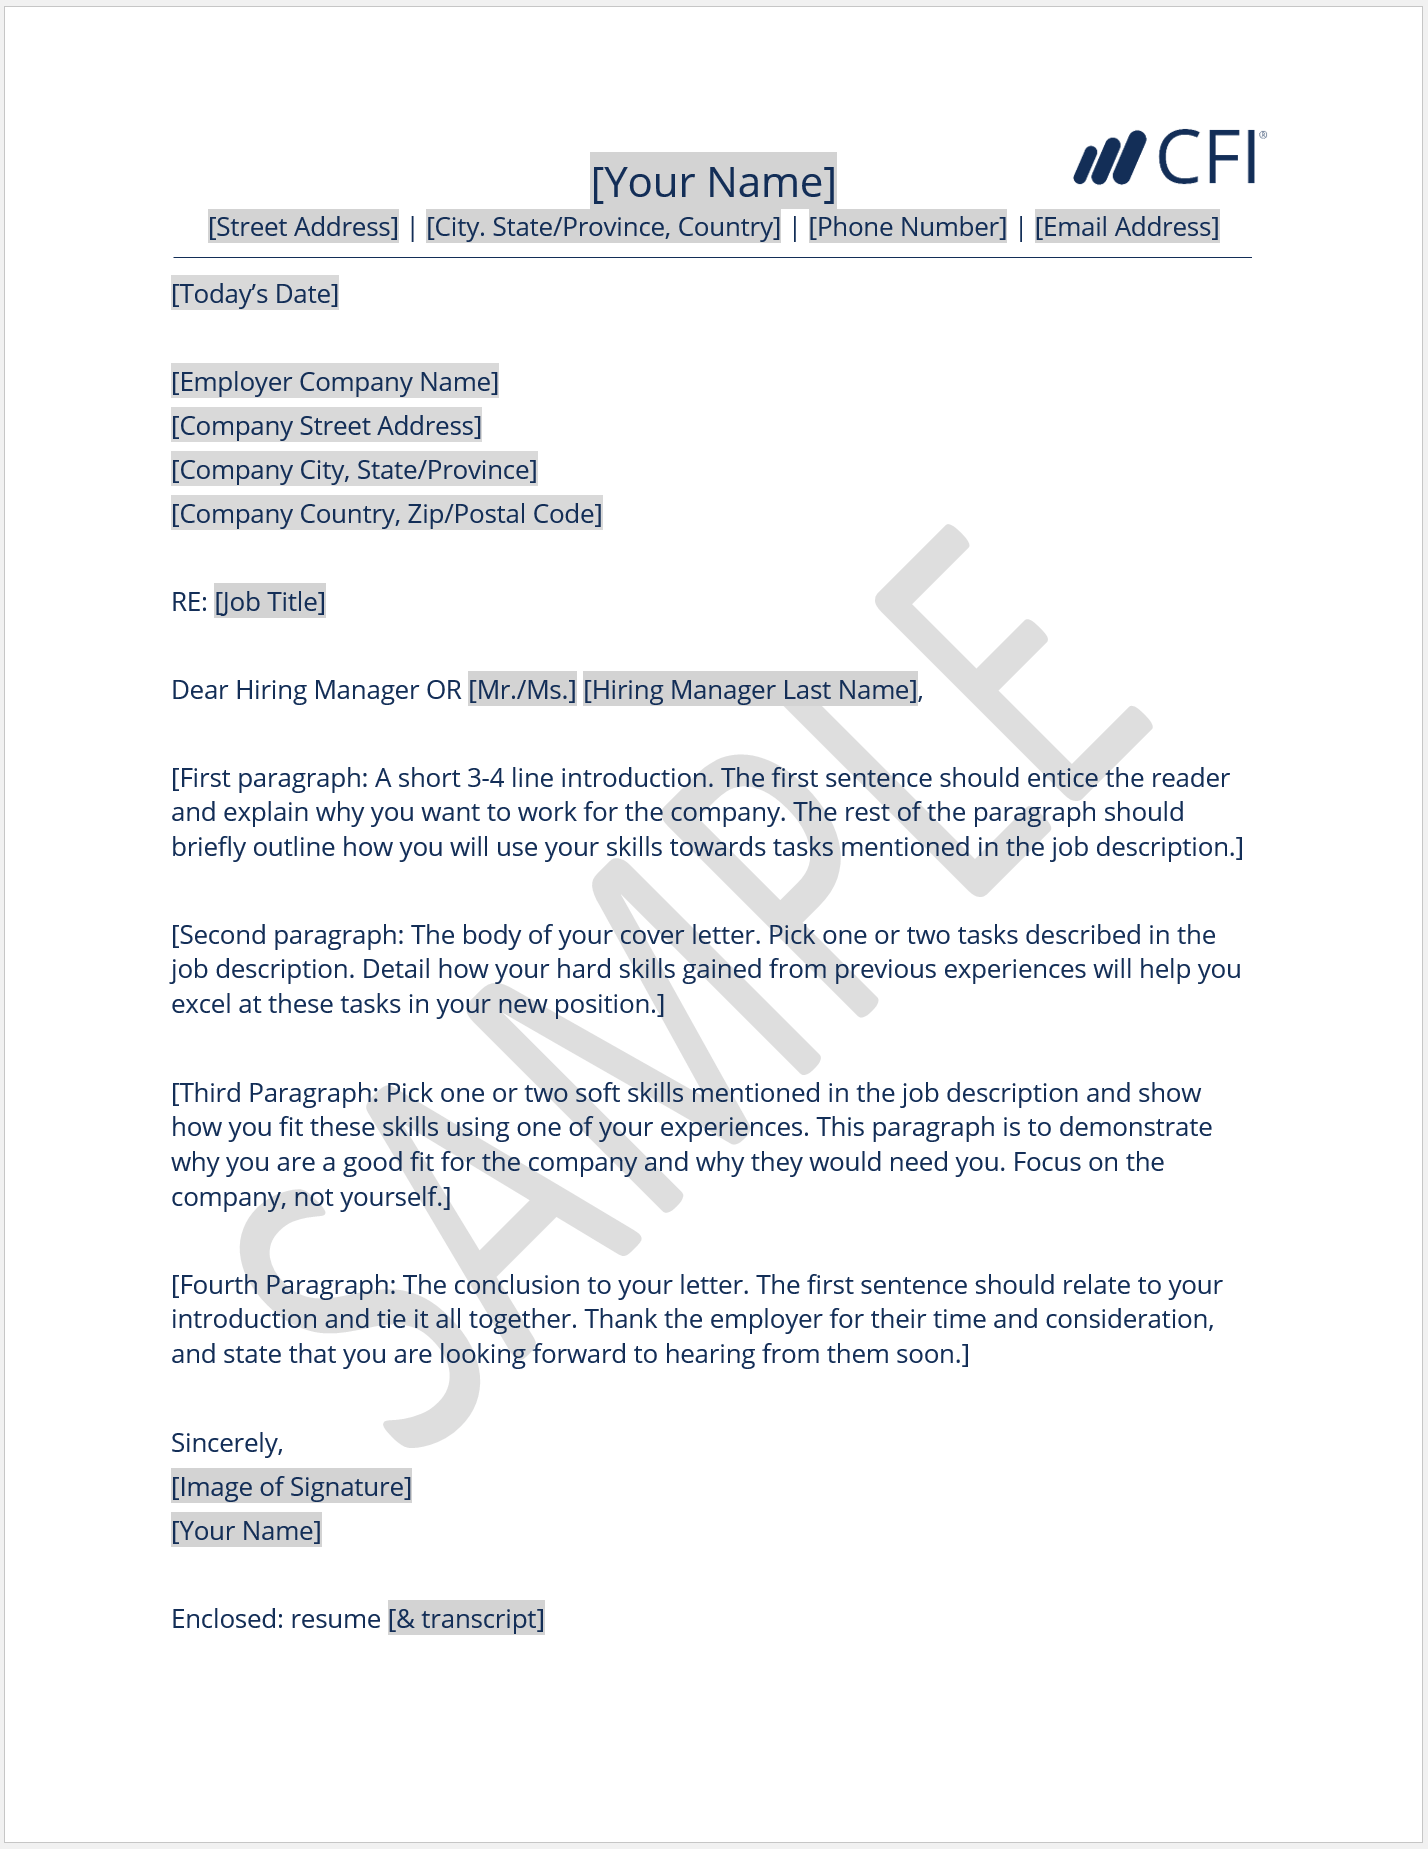 Should All Resumes Have A Cover Letter How To Write A Cover Letter Overview Steps And Tips